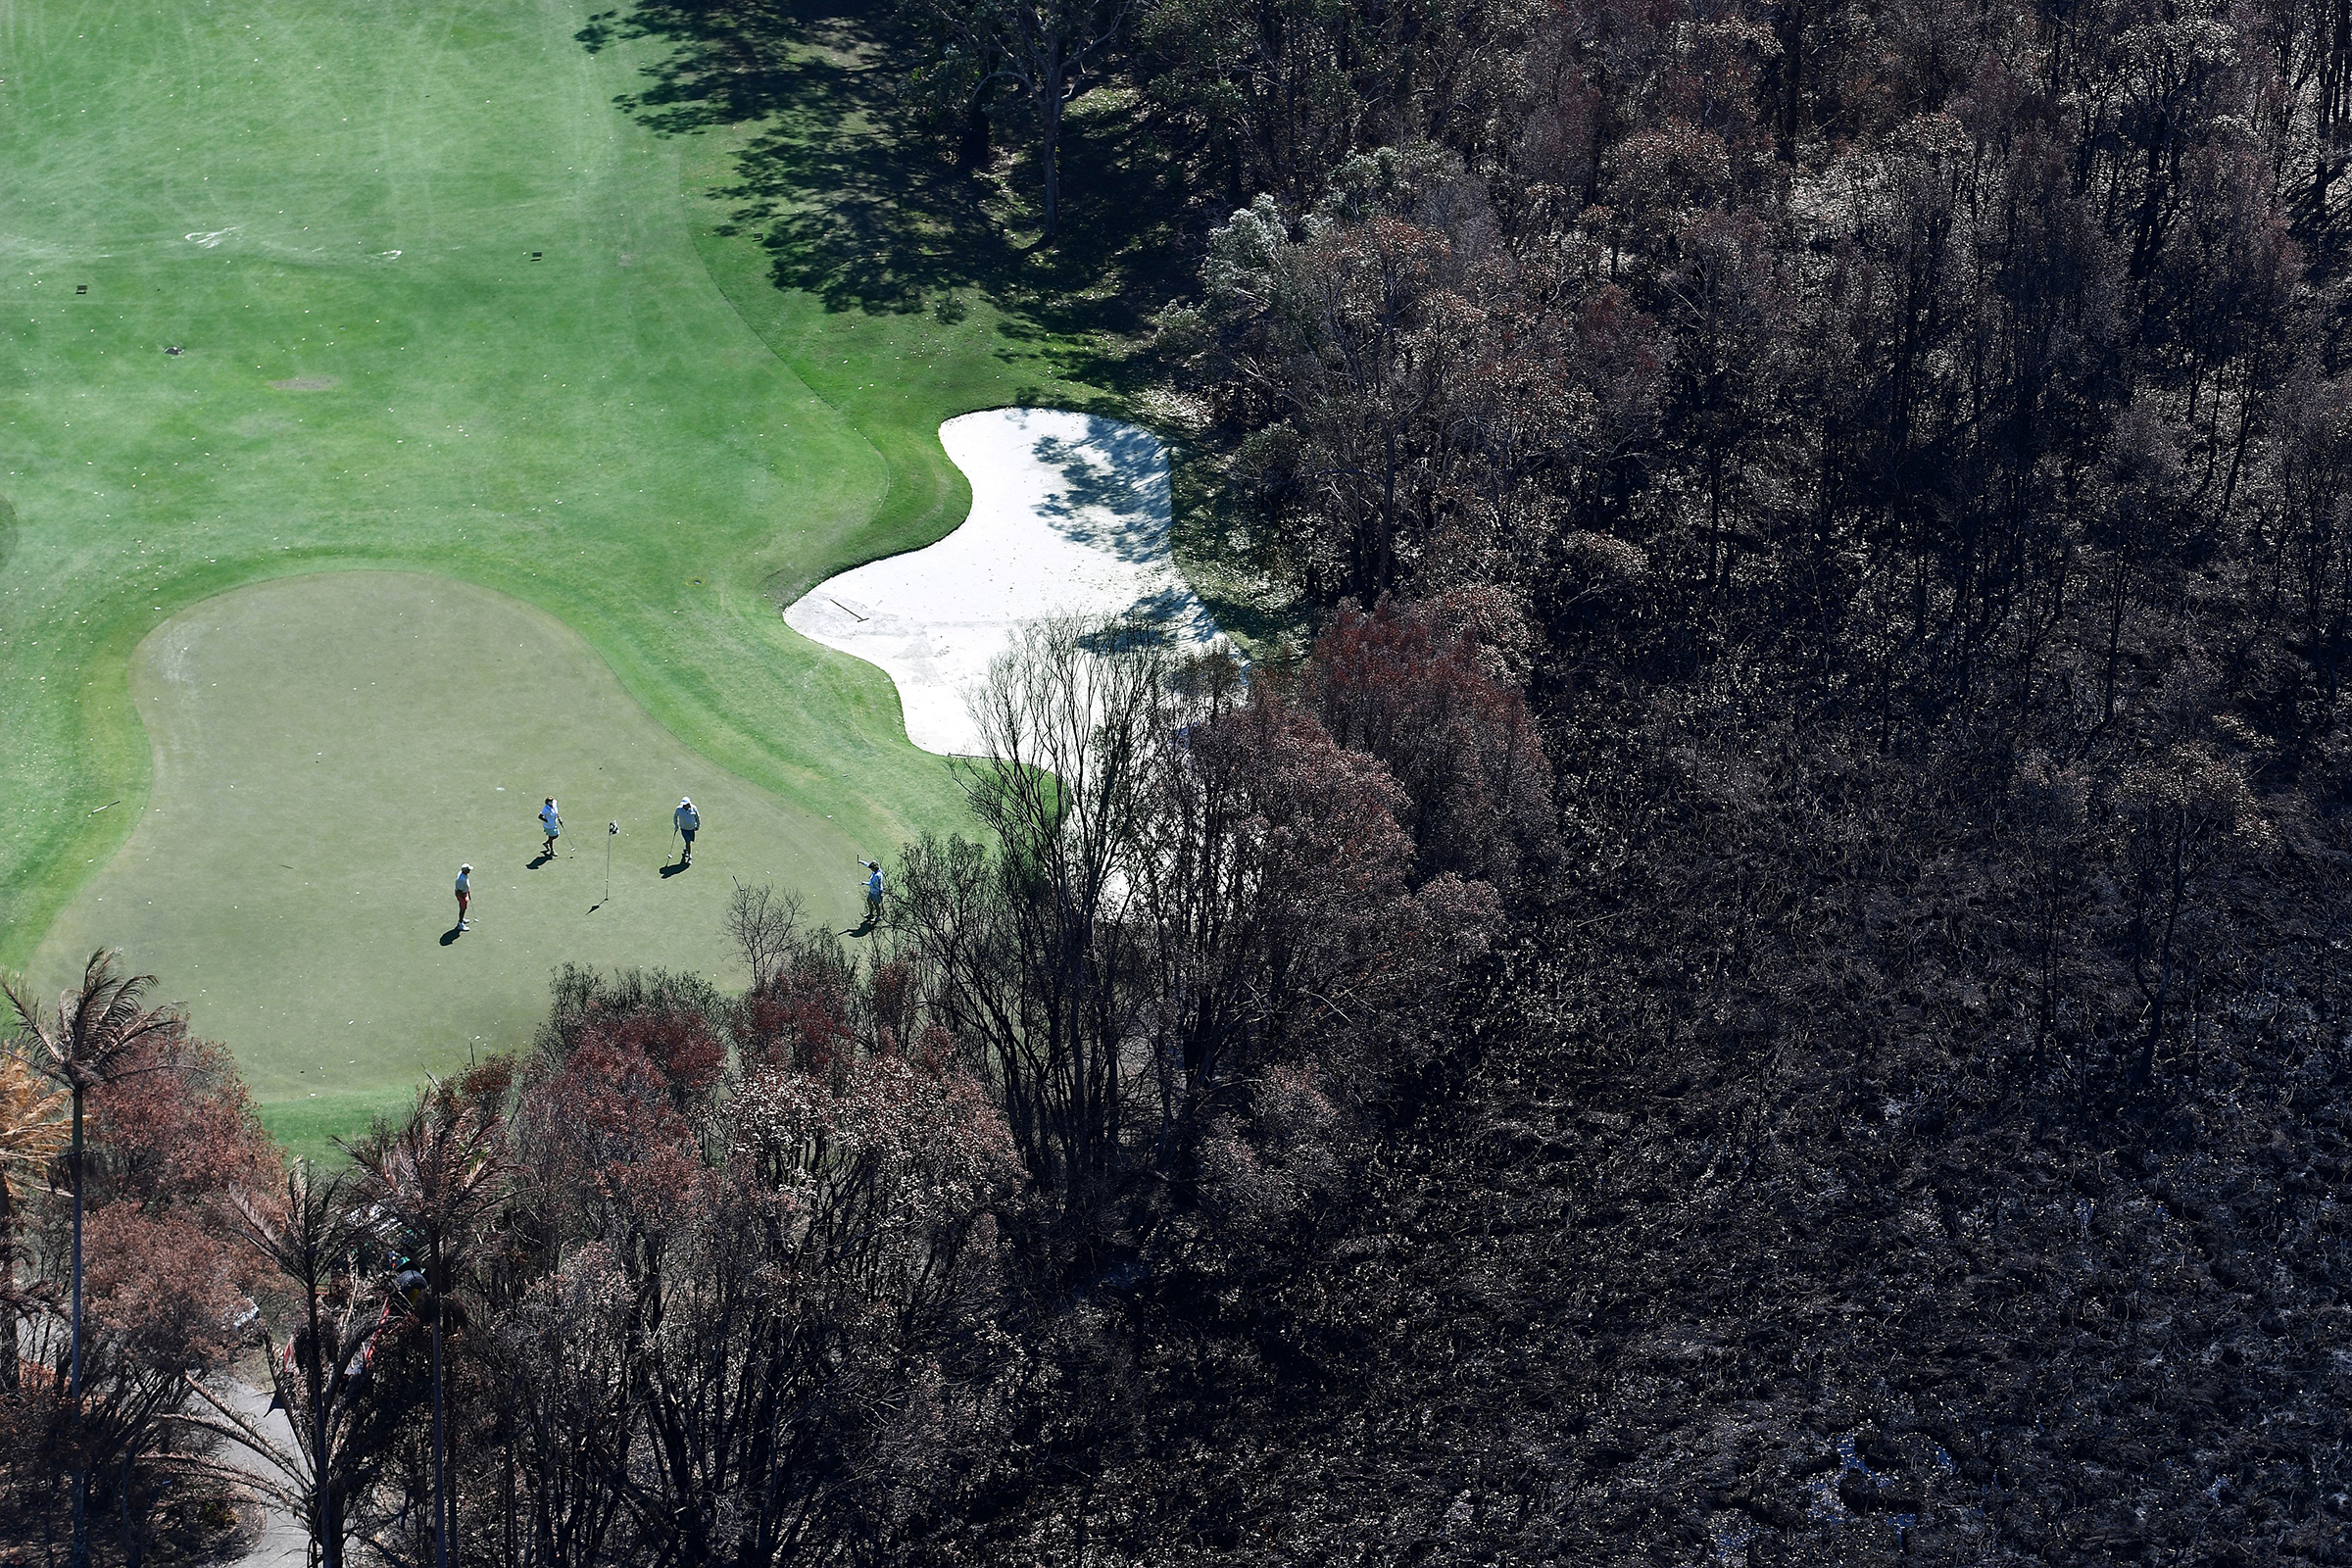 Golfers on the green next to a bushfire-damaged area in Peregian Beach, on the Sunshine Coast, on Sept. 10, 2019.